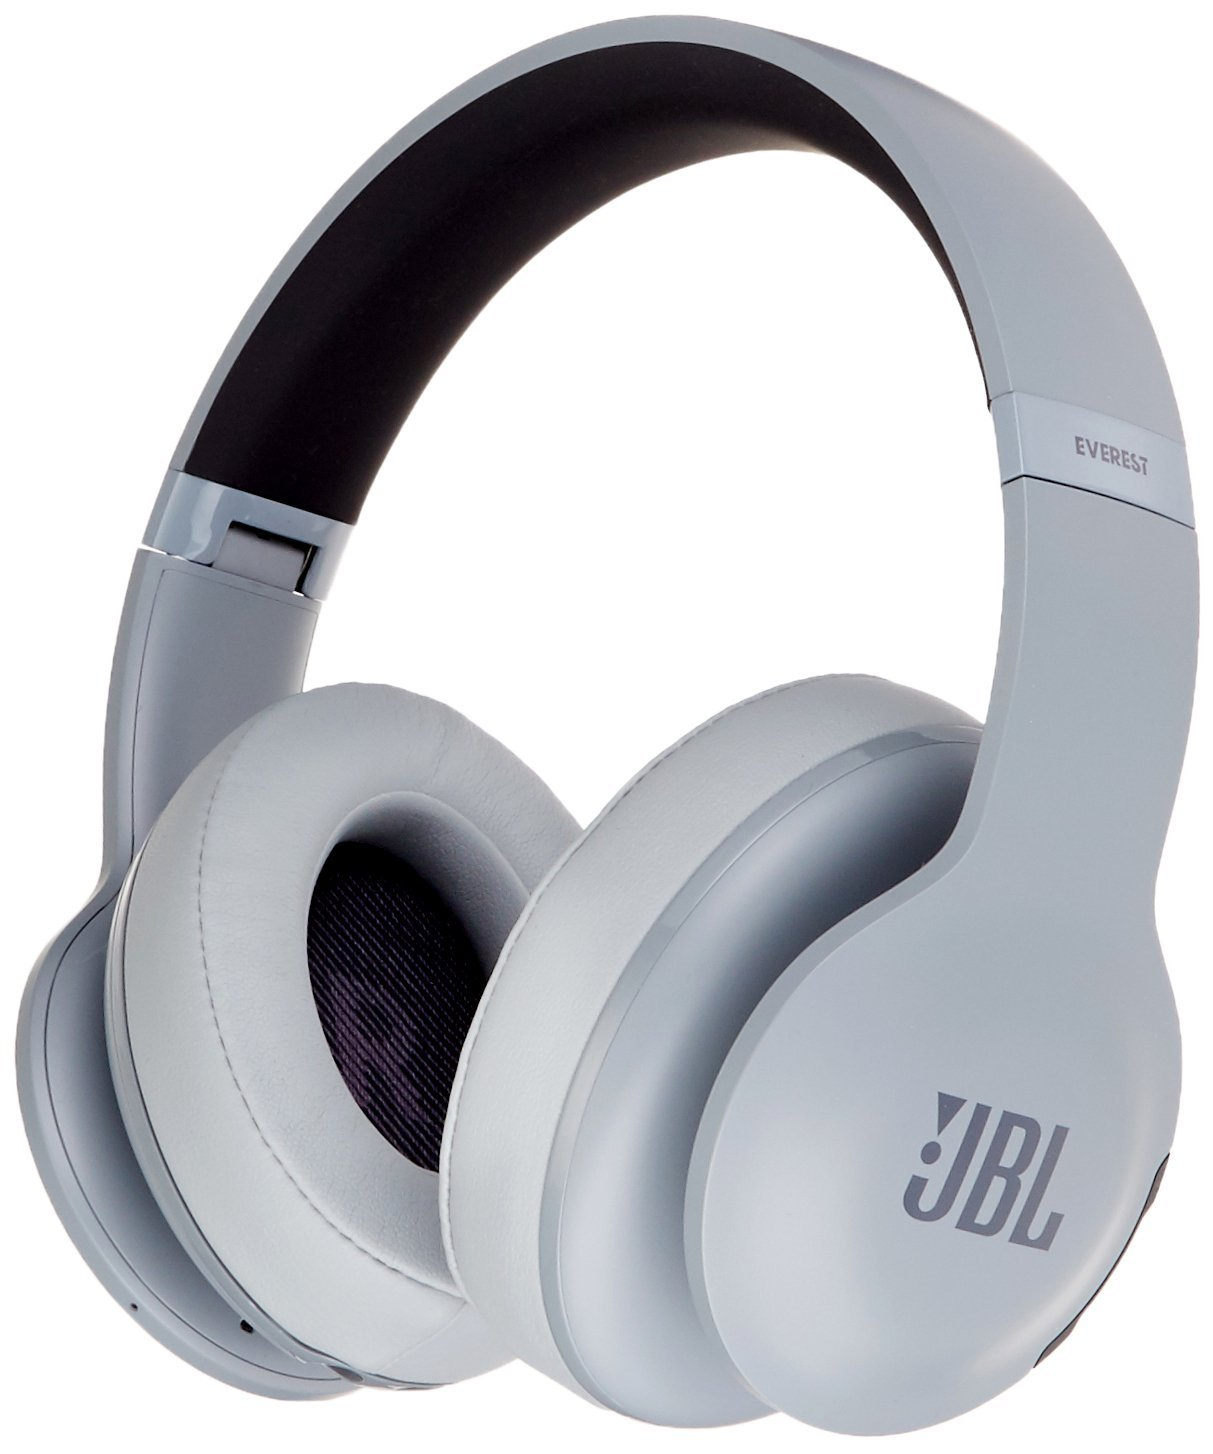 JBL Everest 700 Wireless Bluetooth Around-Ear Headphones Gray - Certified Refurbished